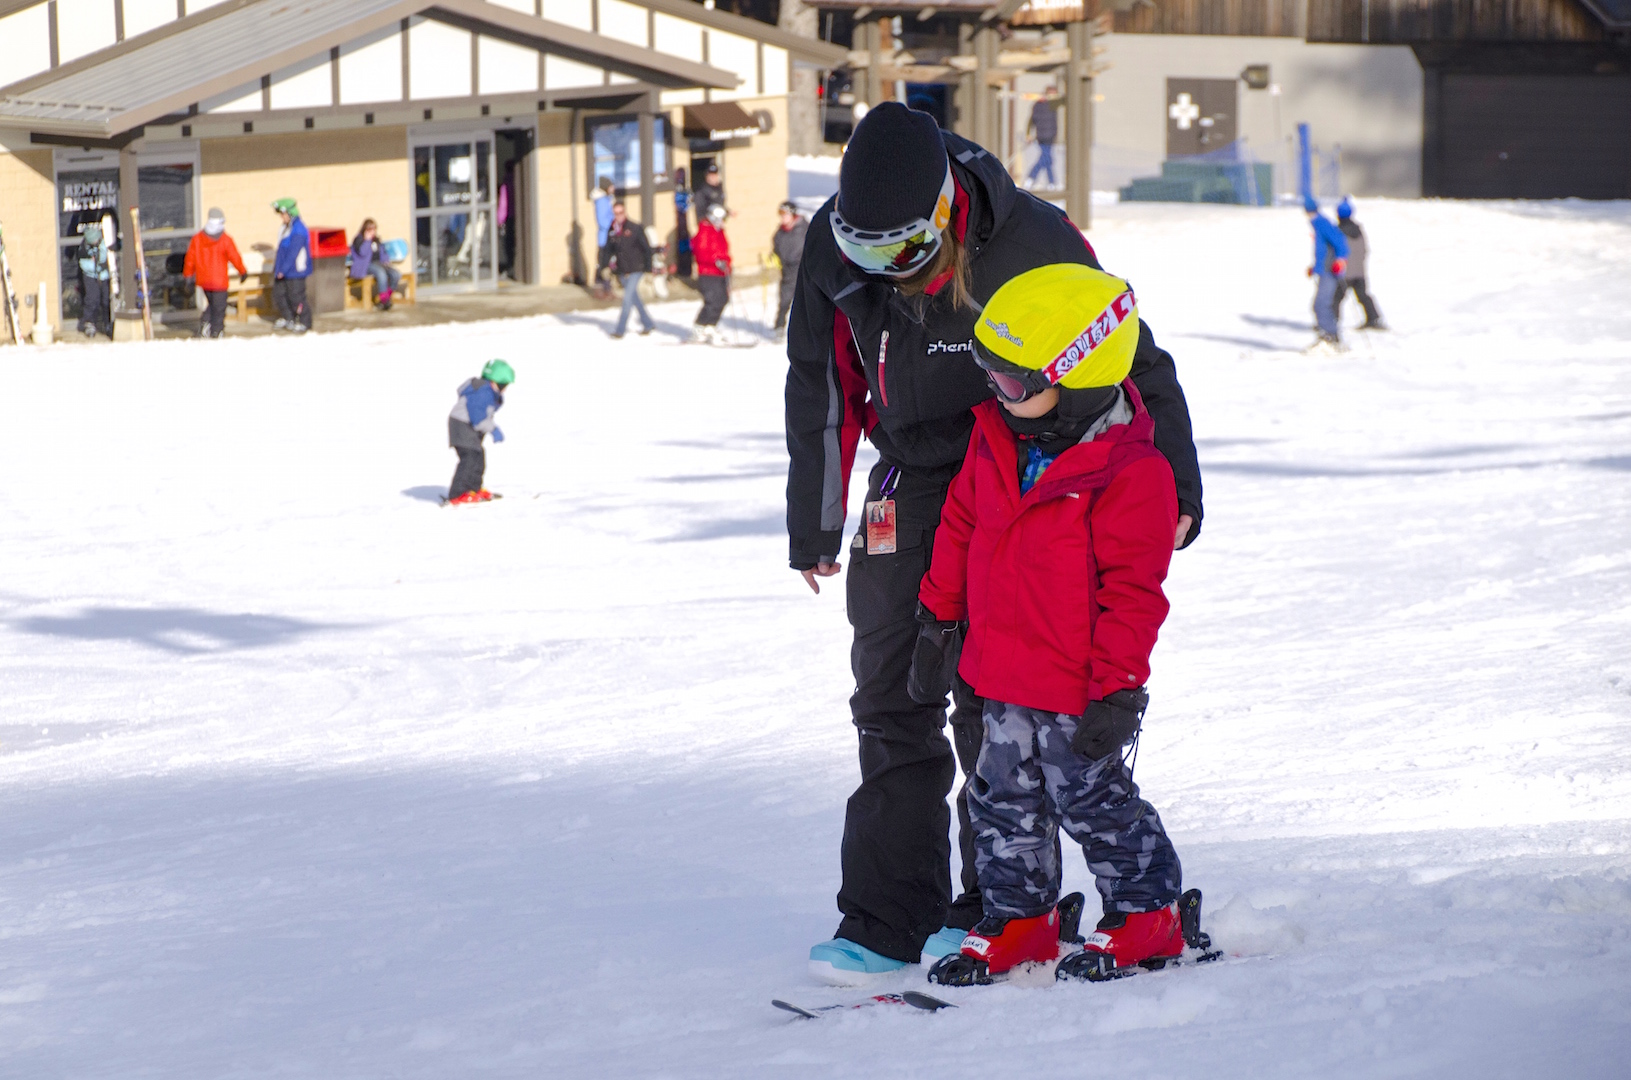 Children's Programs at Snow Trails this Holiday Weekend